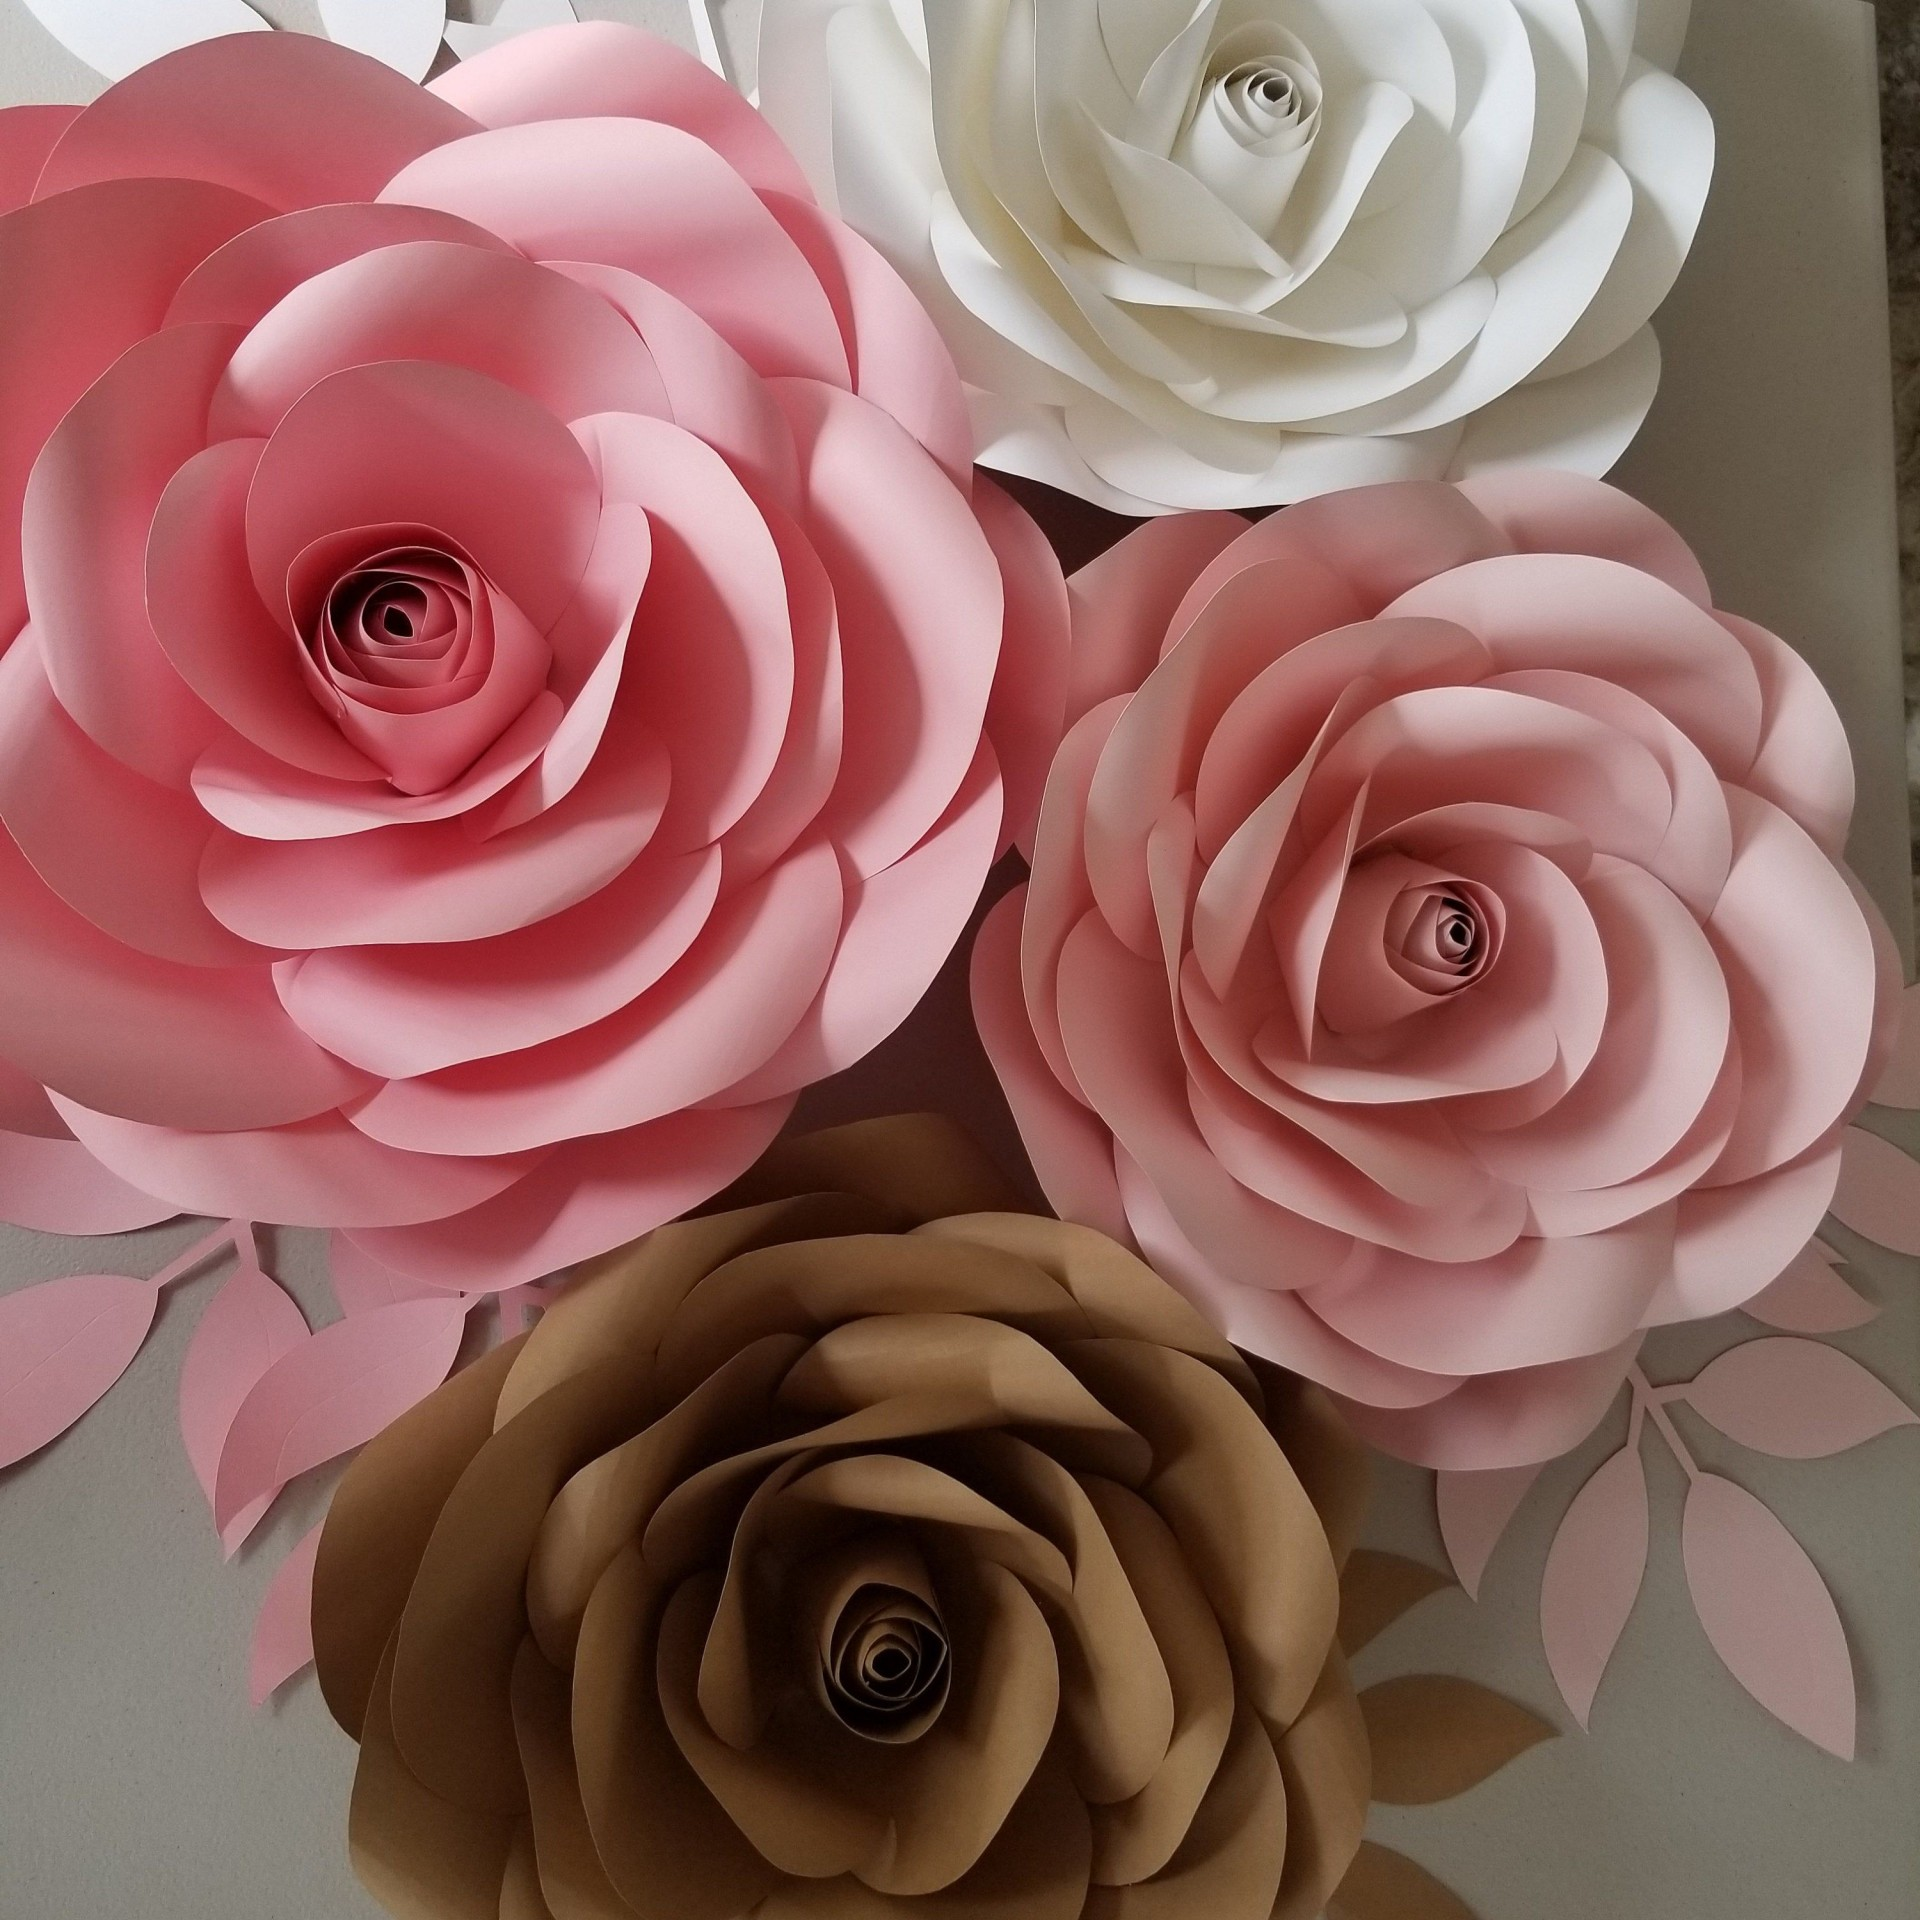 007 Fearsome Paper Rose Template Pdf Concept  Flower Giant Free Crepe1920